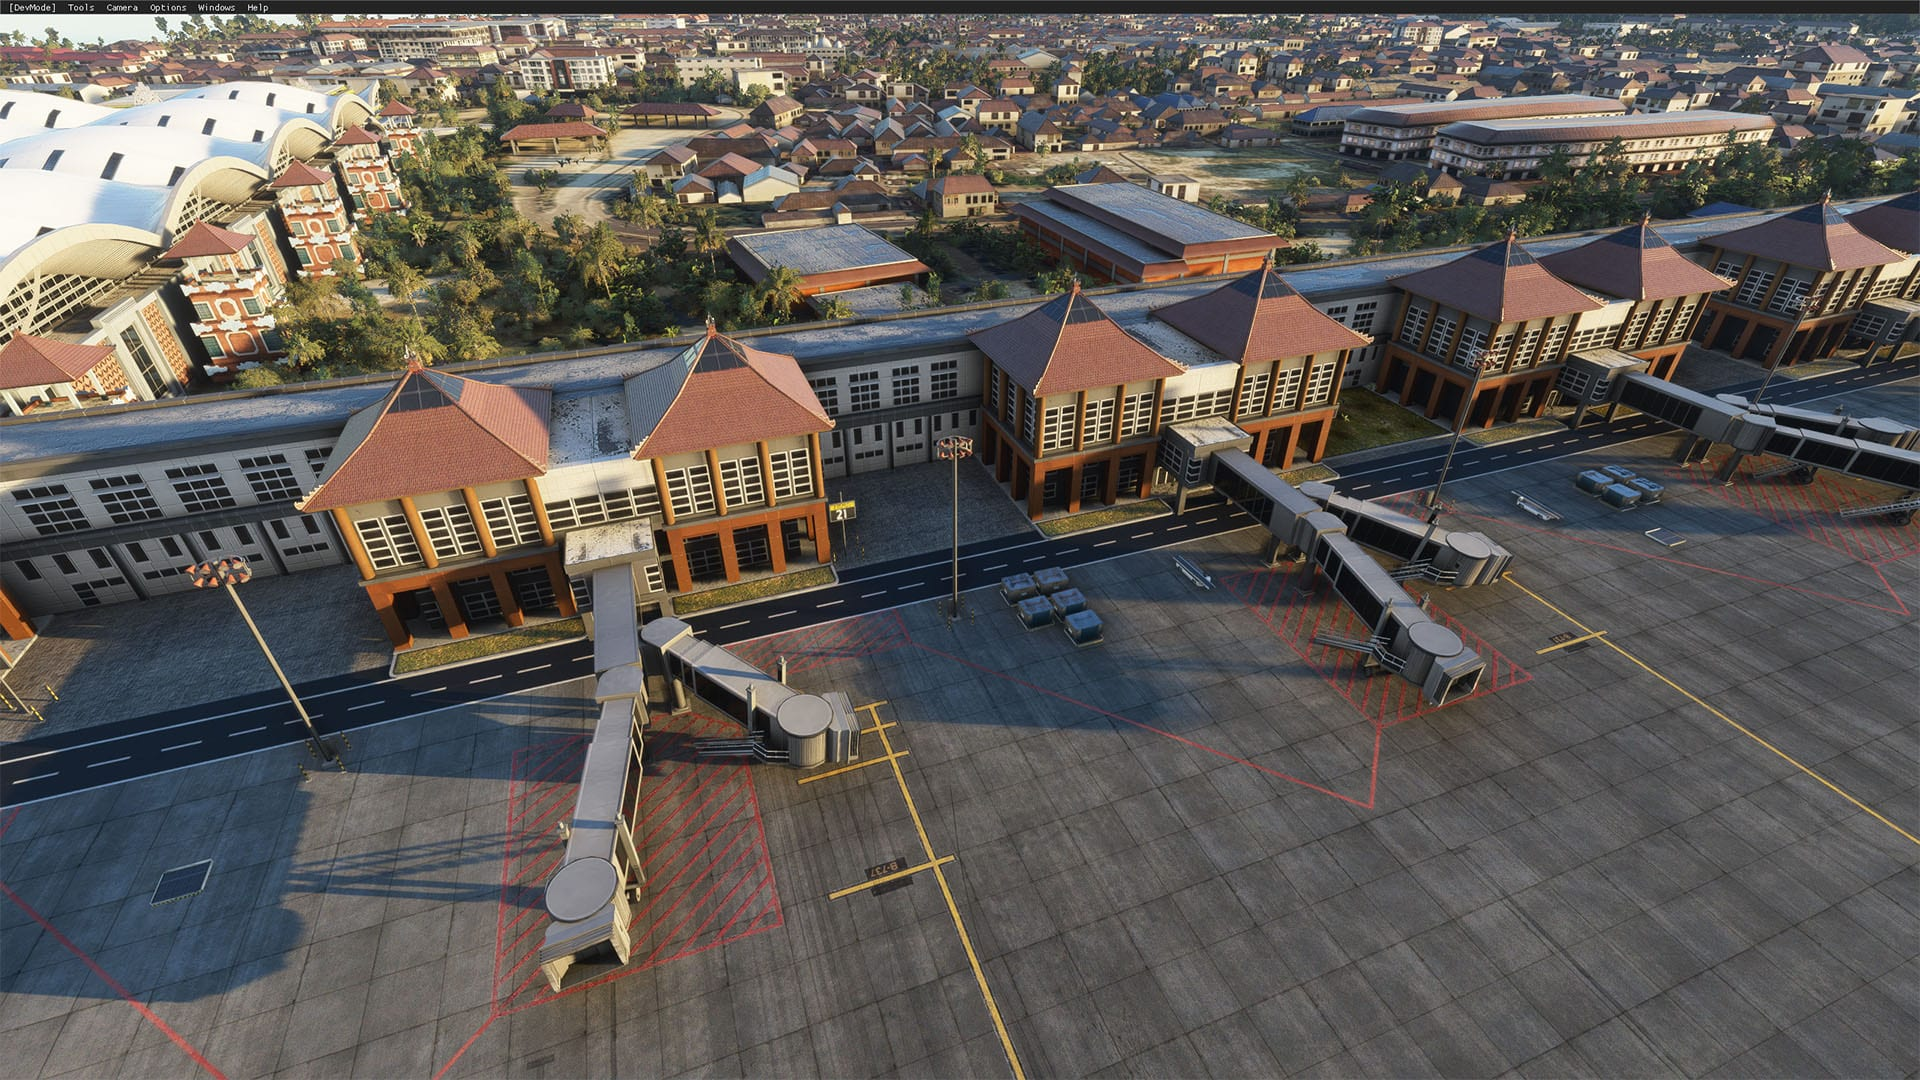 Microsoft Flight Simulator Bali Airport